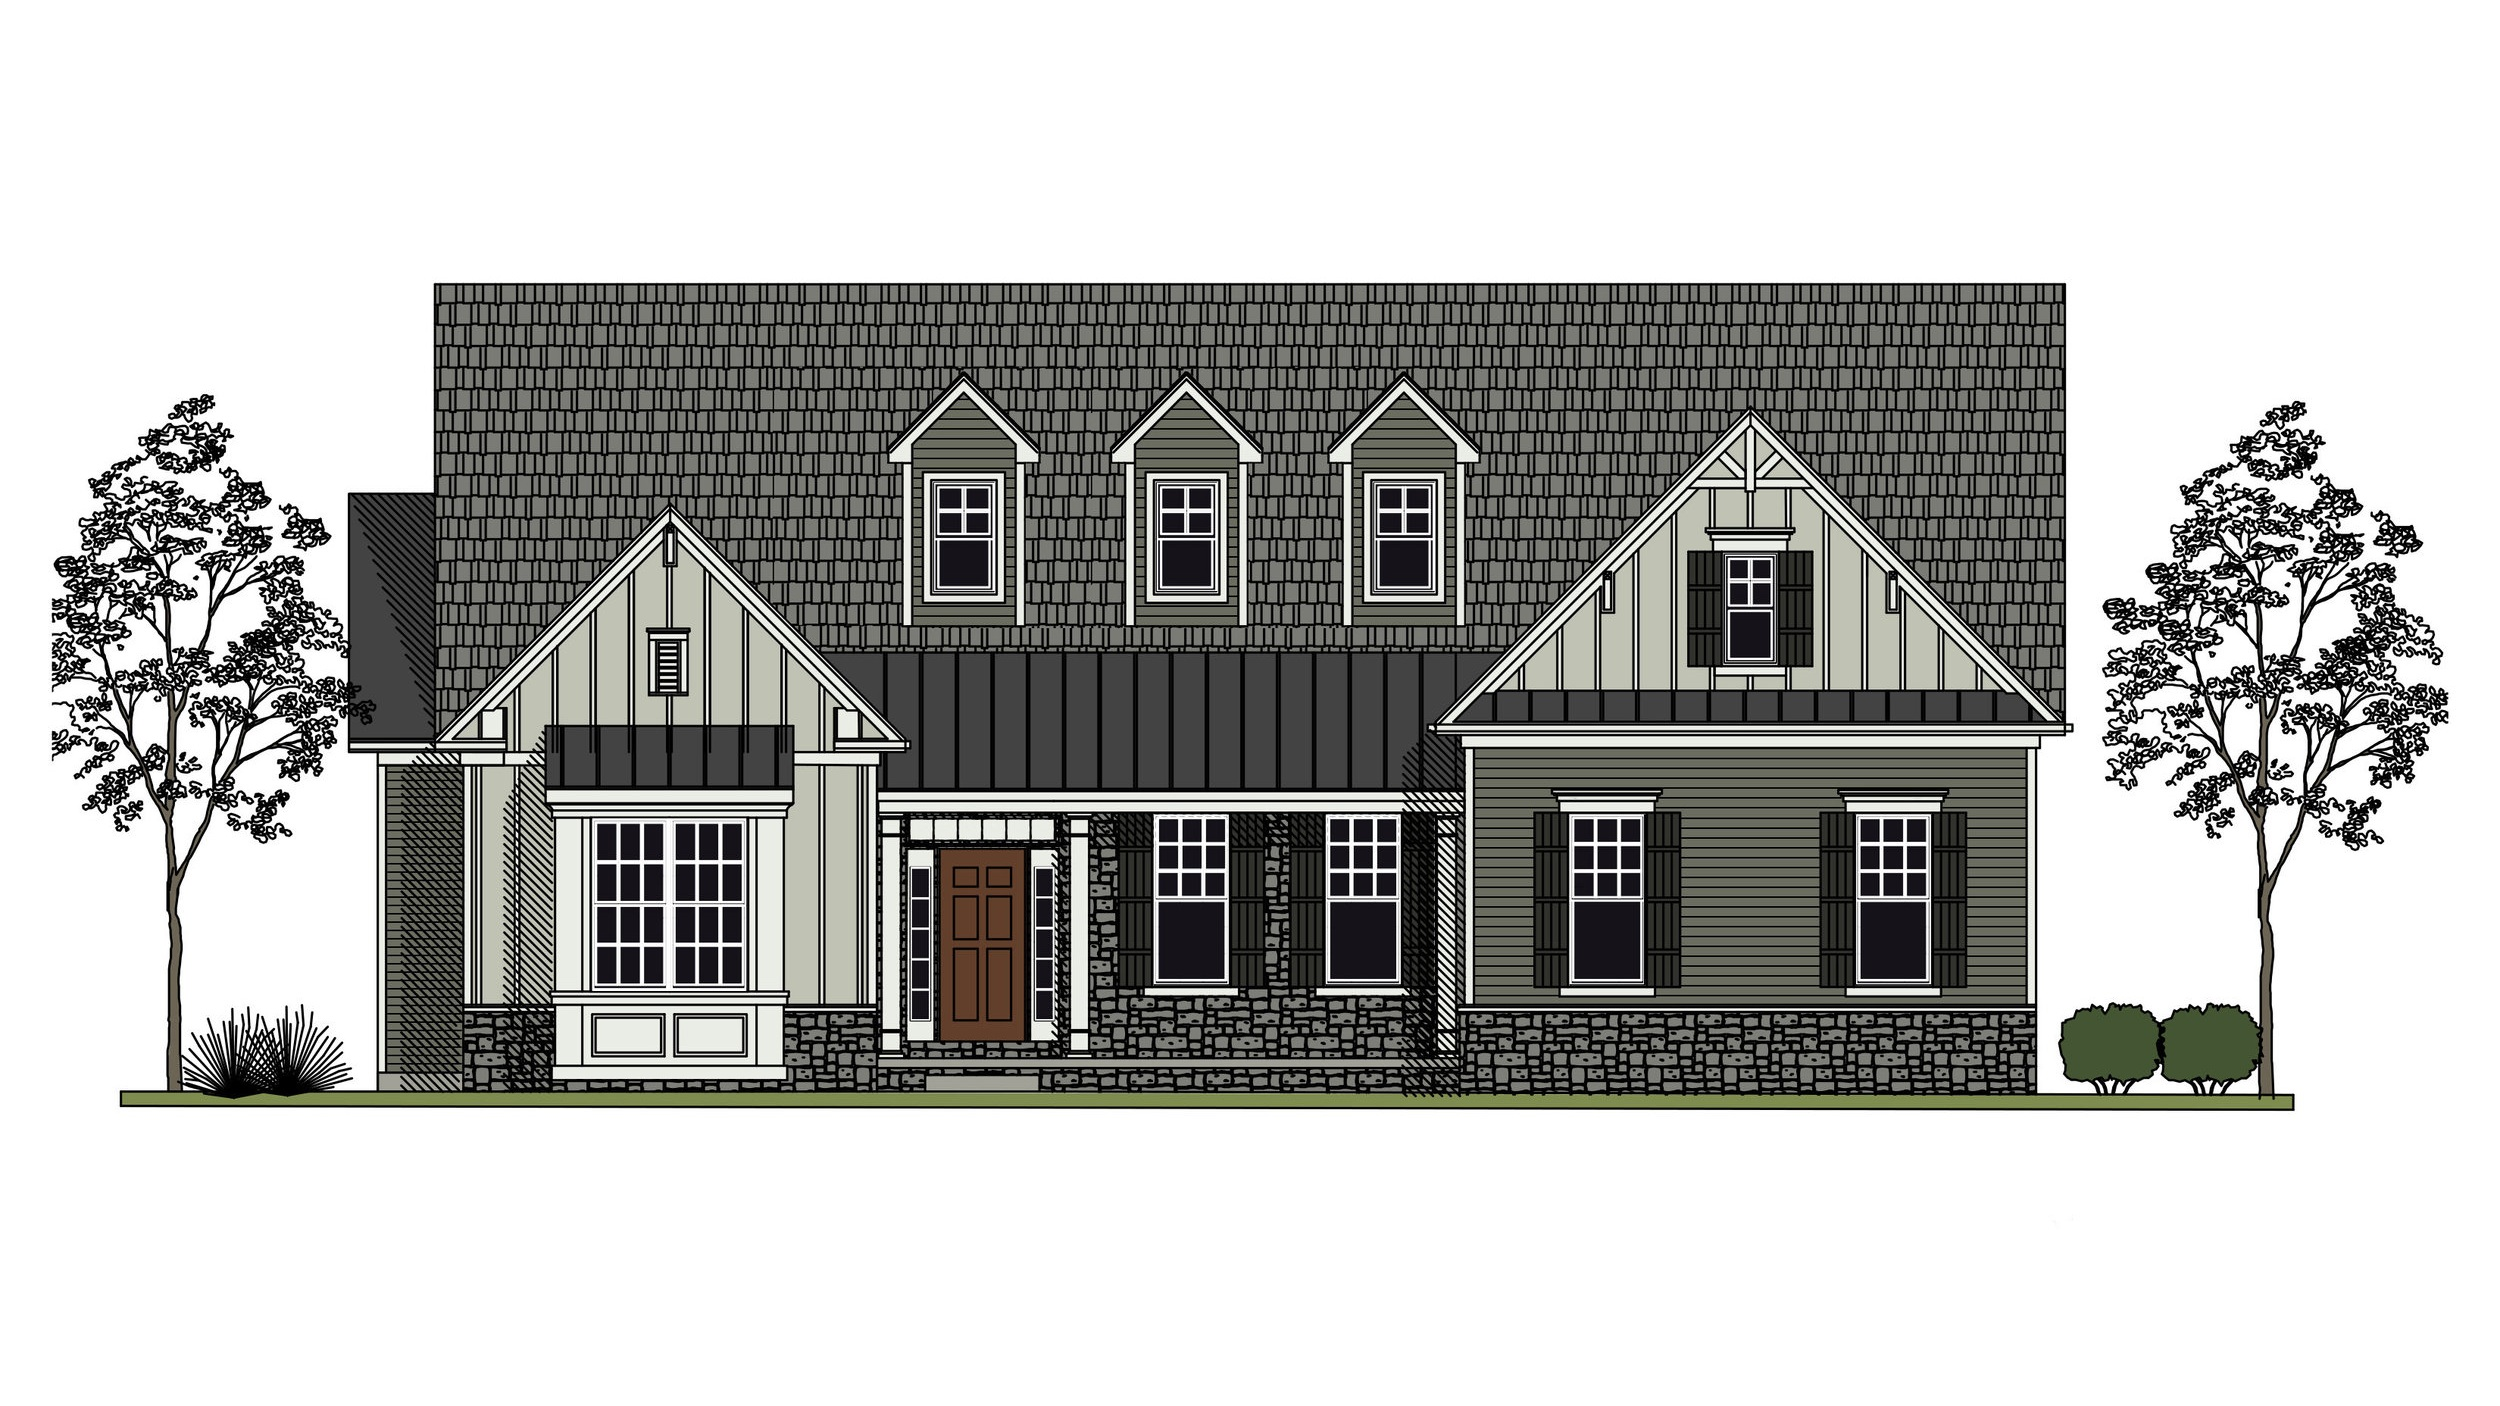 BLH+RANCH+ELEVATION+2-21-19+Final+WITH+3RD+DORMER.jpg